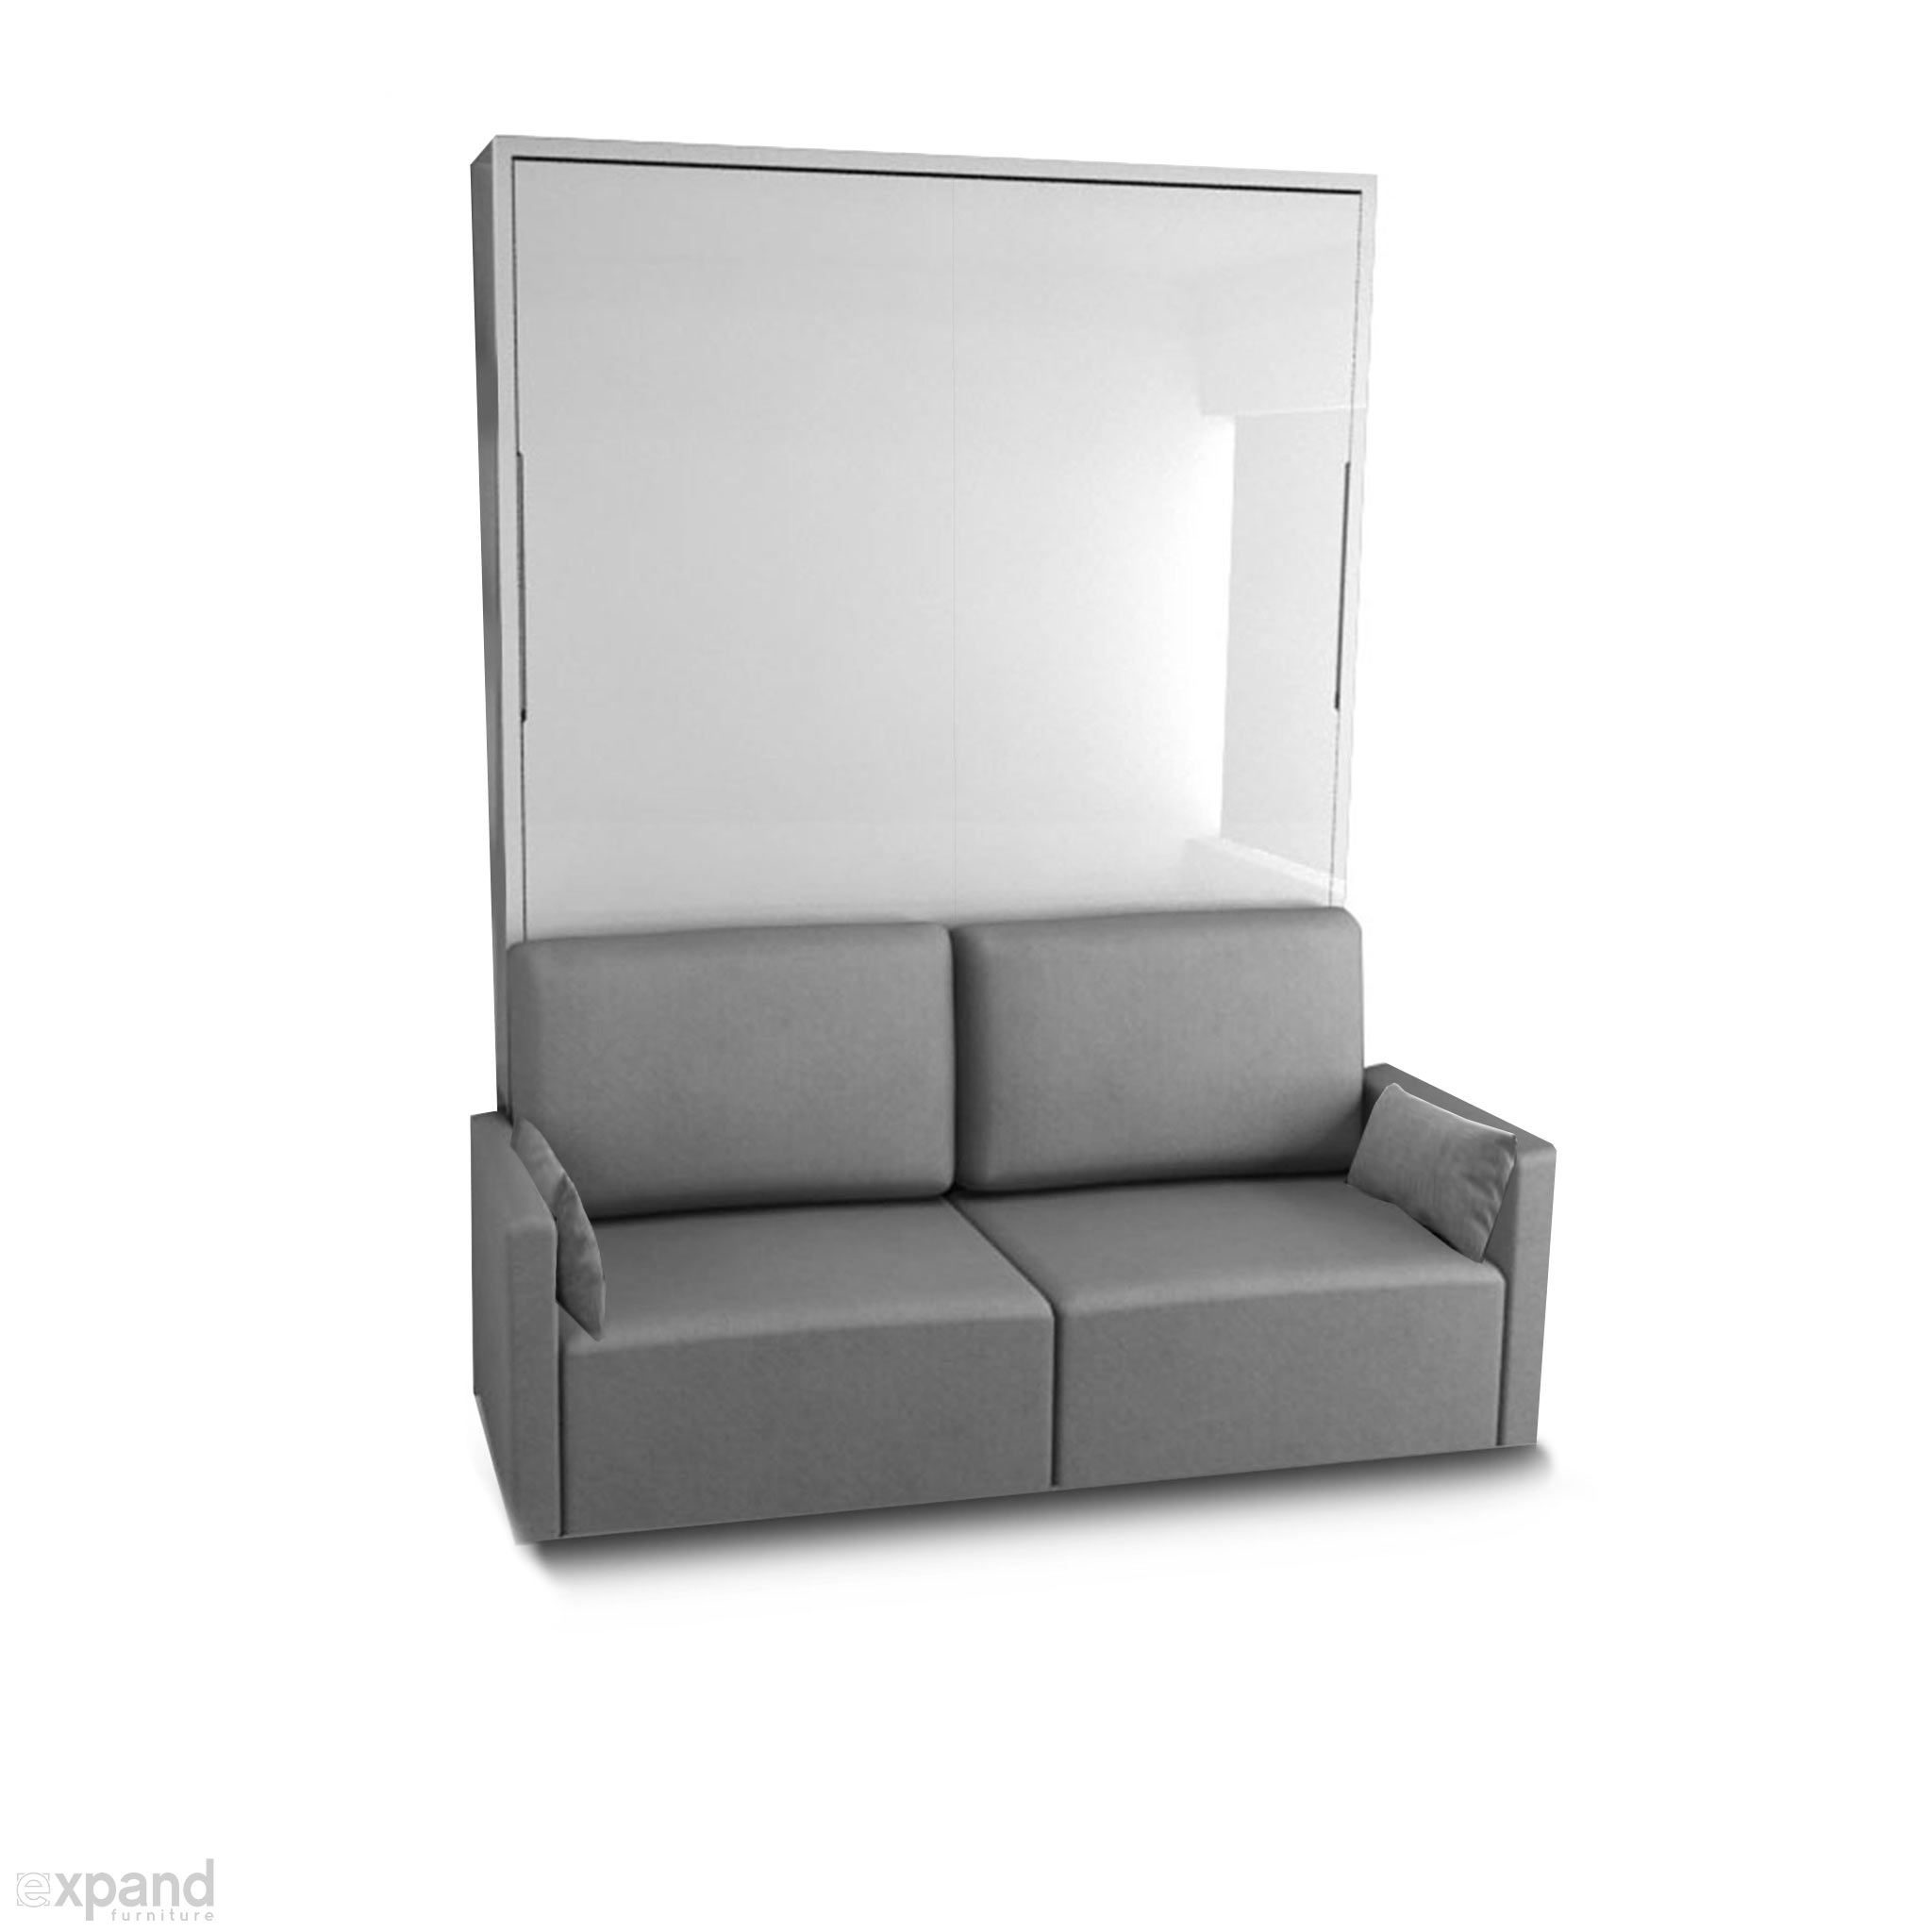 Sensational Murphysofa Clean Double Wall Bed Couch Ibusinesslaw Wood Chair Design Ideas Ibusinesslaworg